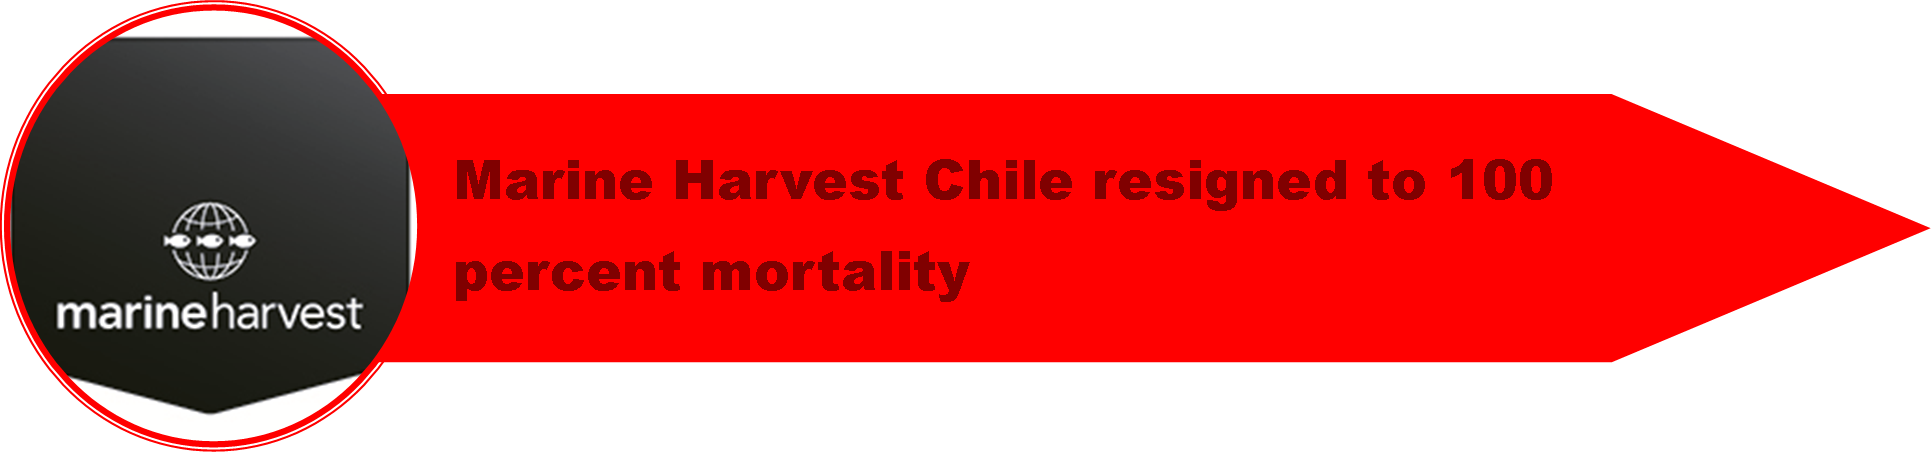 1_Chile_Crisis_5.png